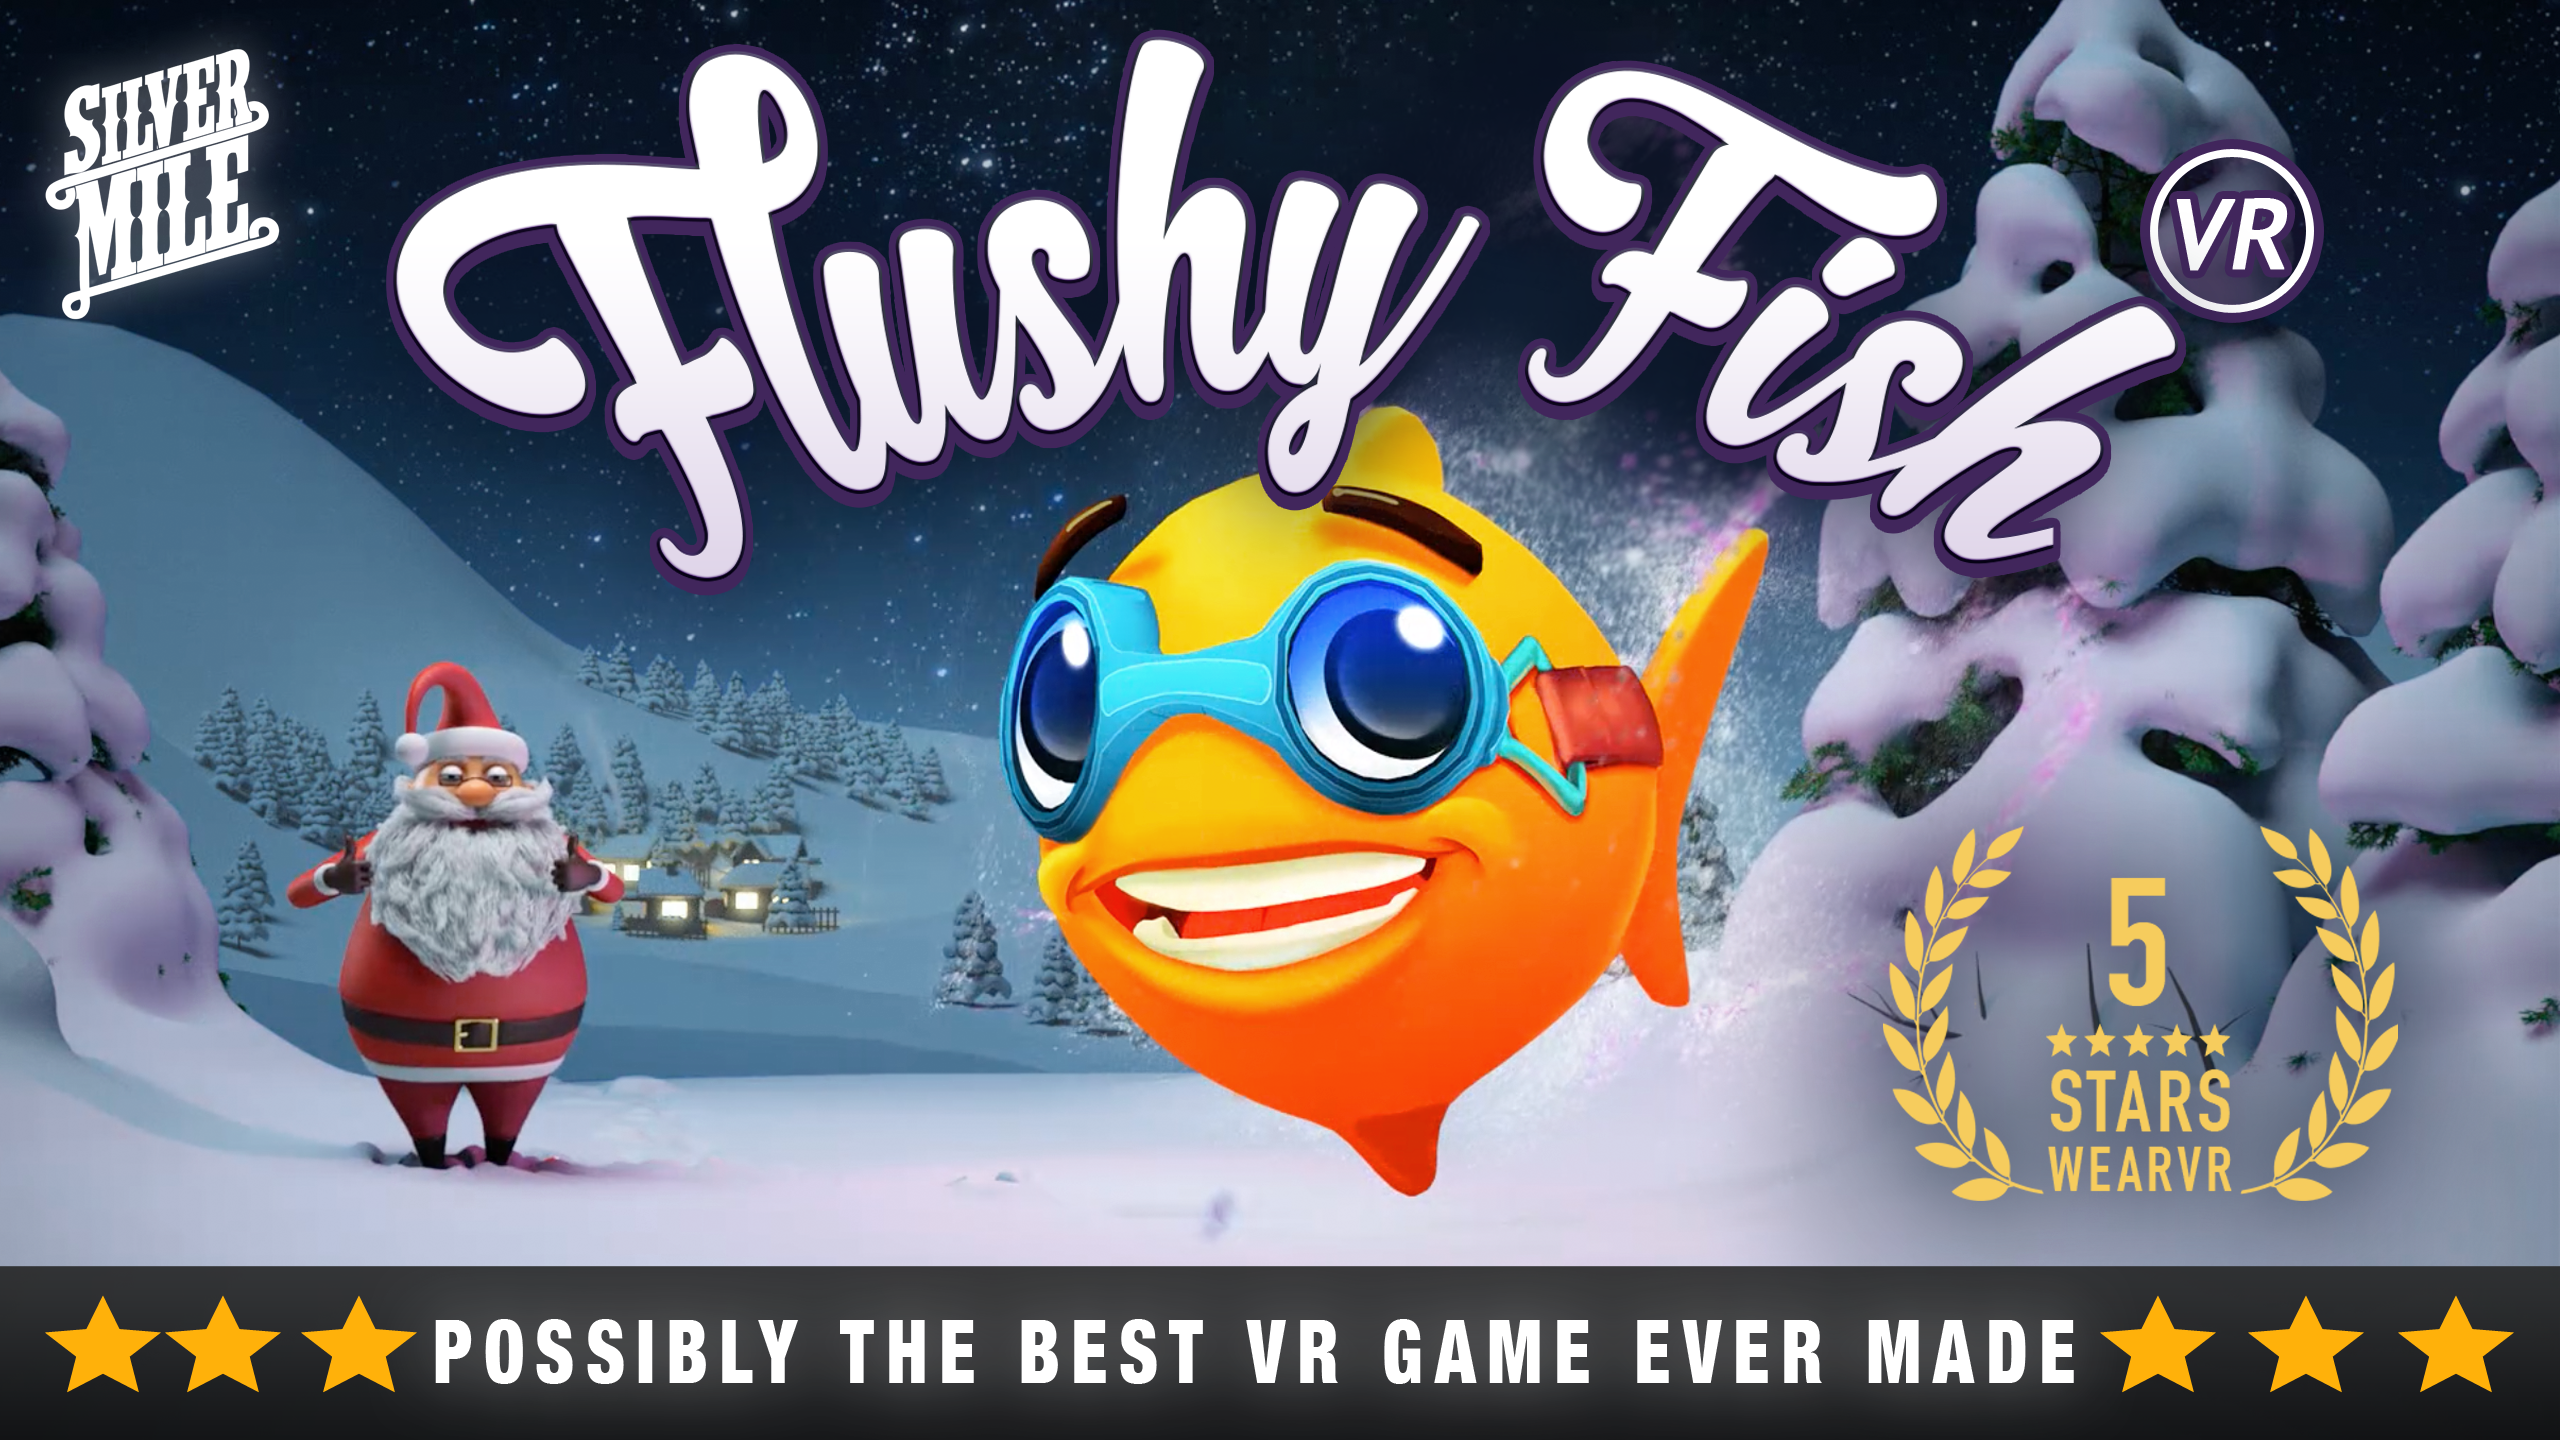 Best Vr Games 2020.The Virtual Reality Gaming Phenomenon Flushy Fish Vr Is